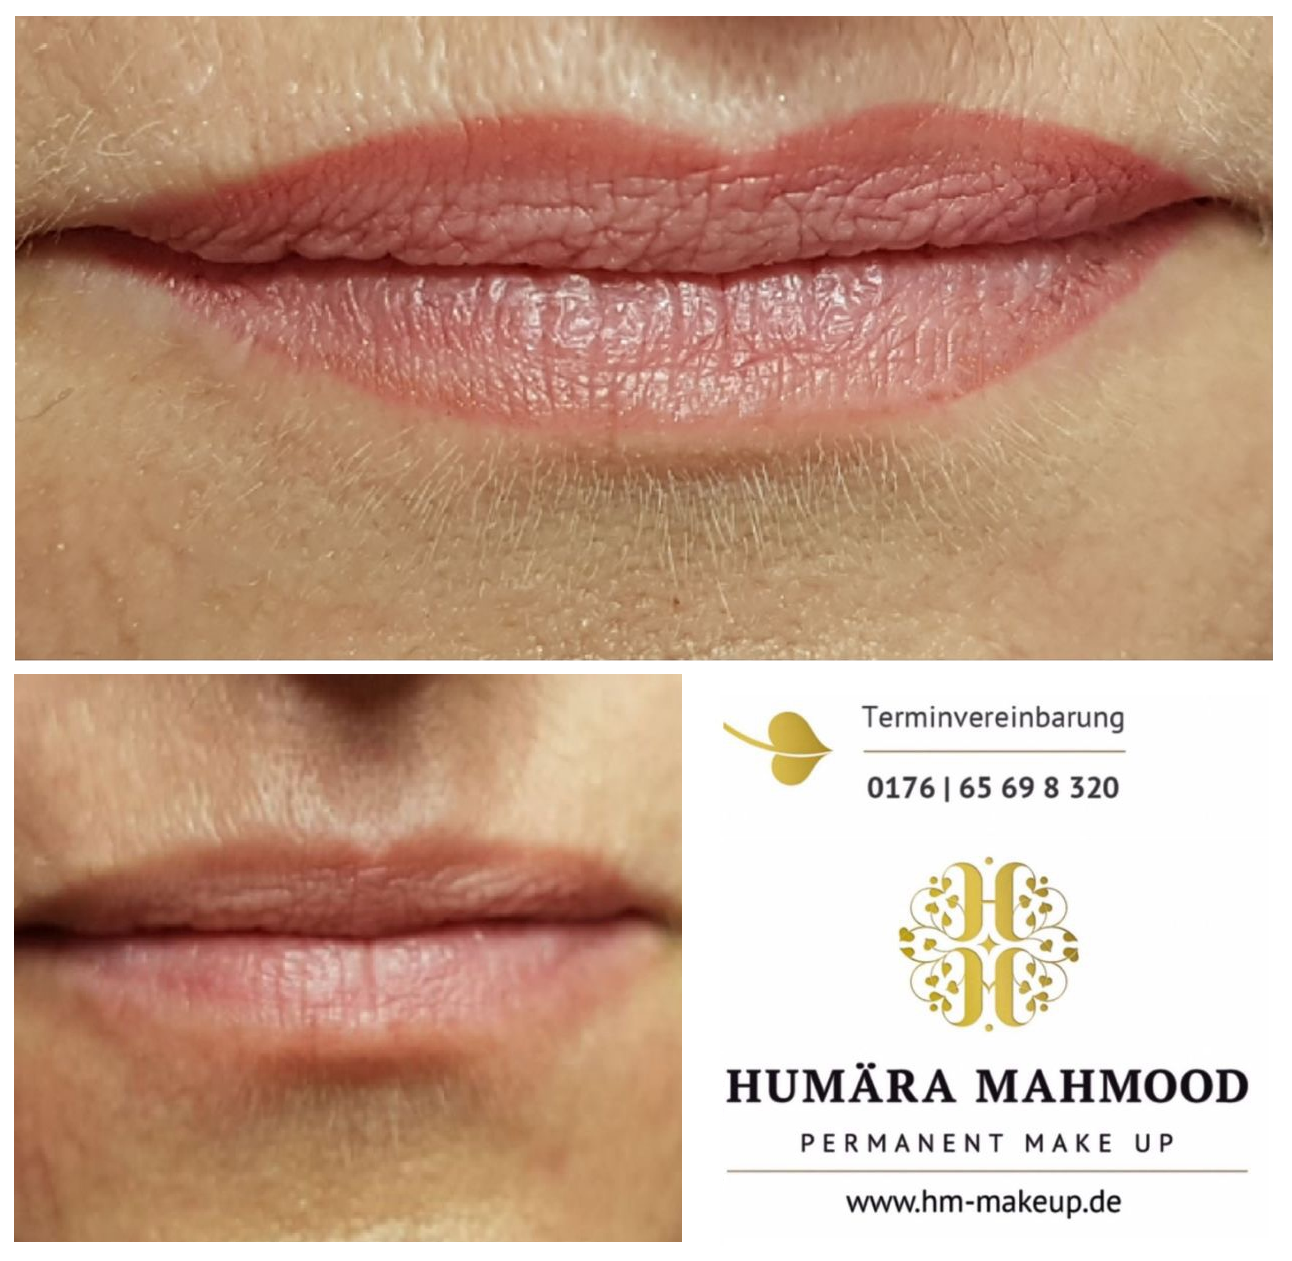 Lippen Permanent Make-up vorher nachher